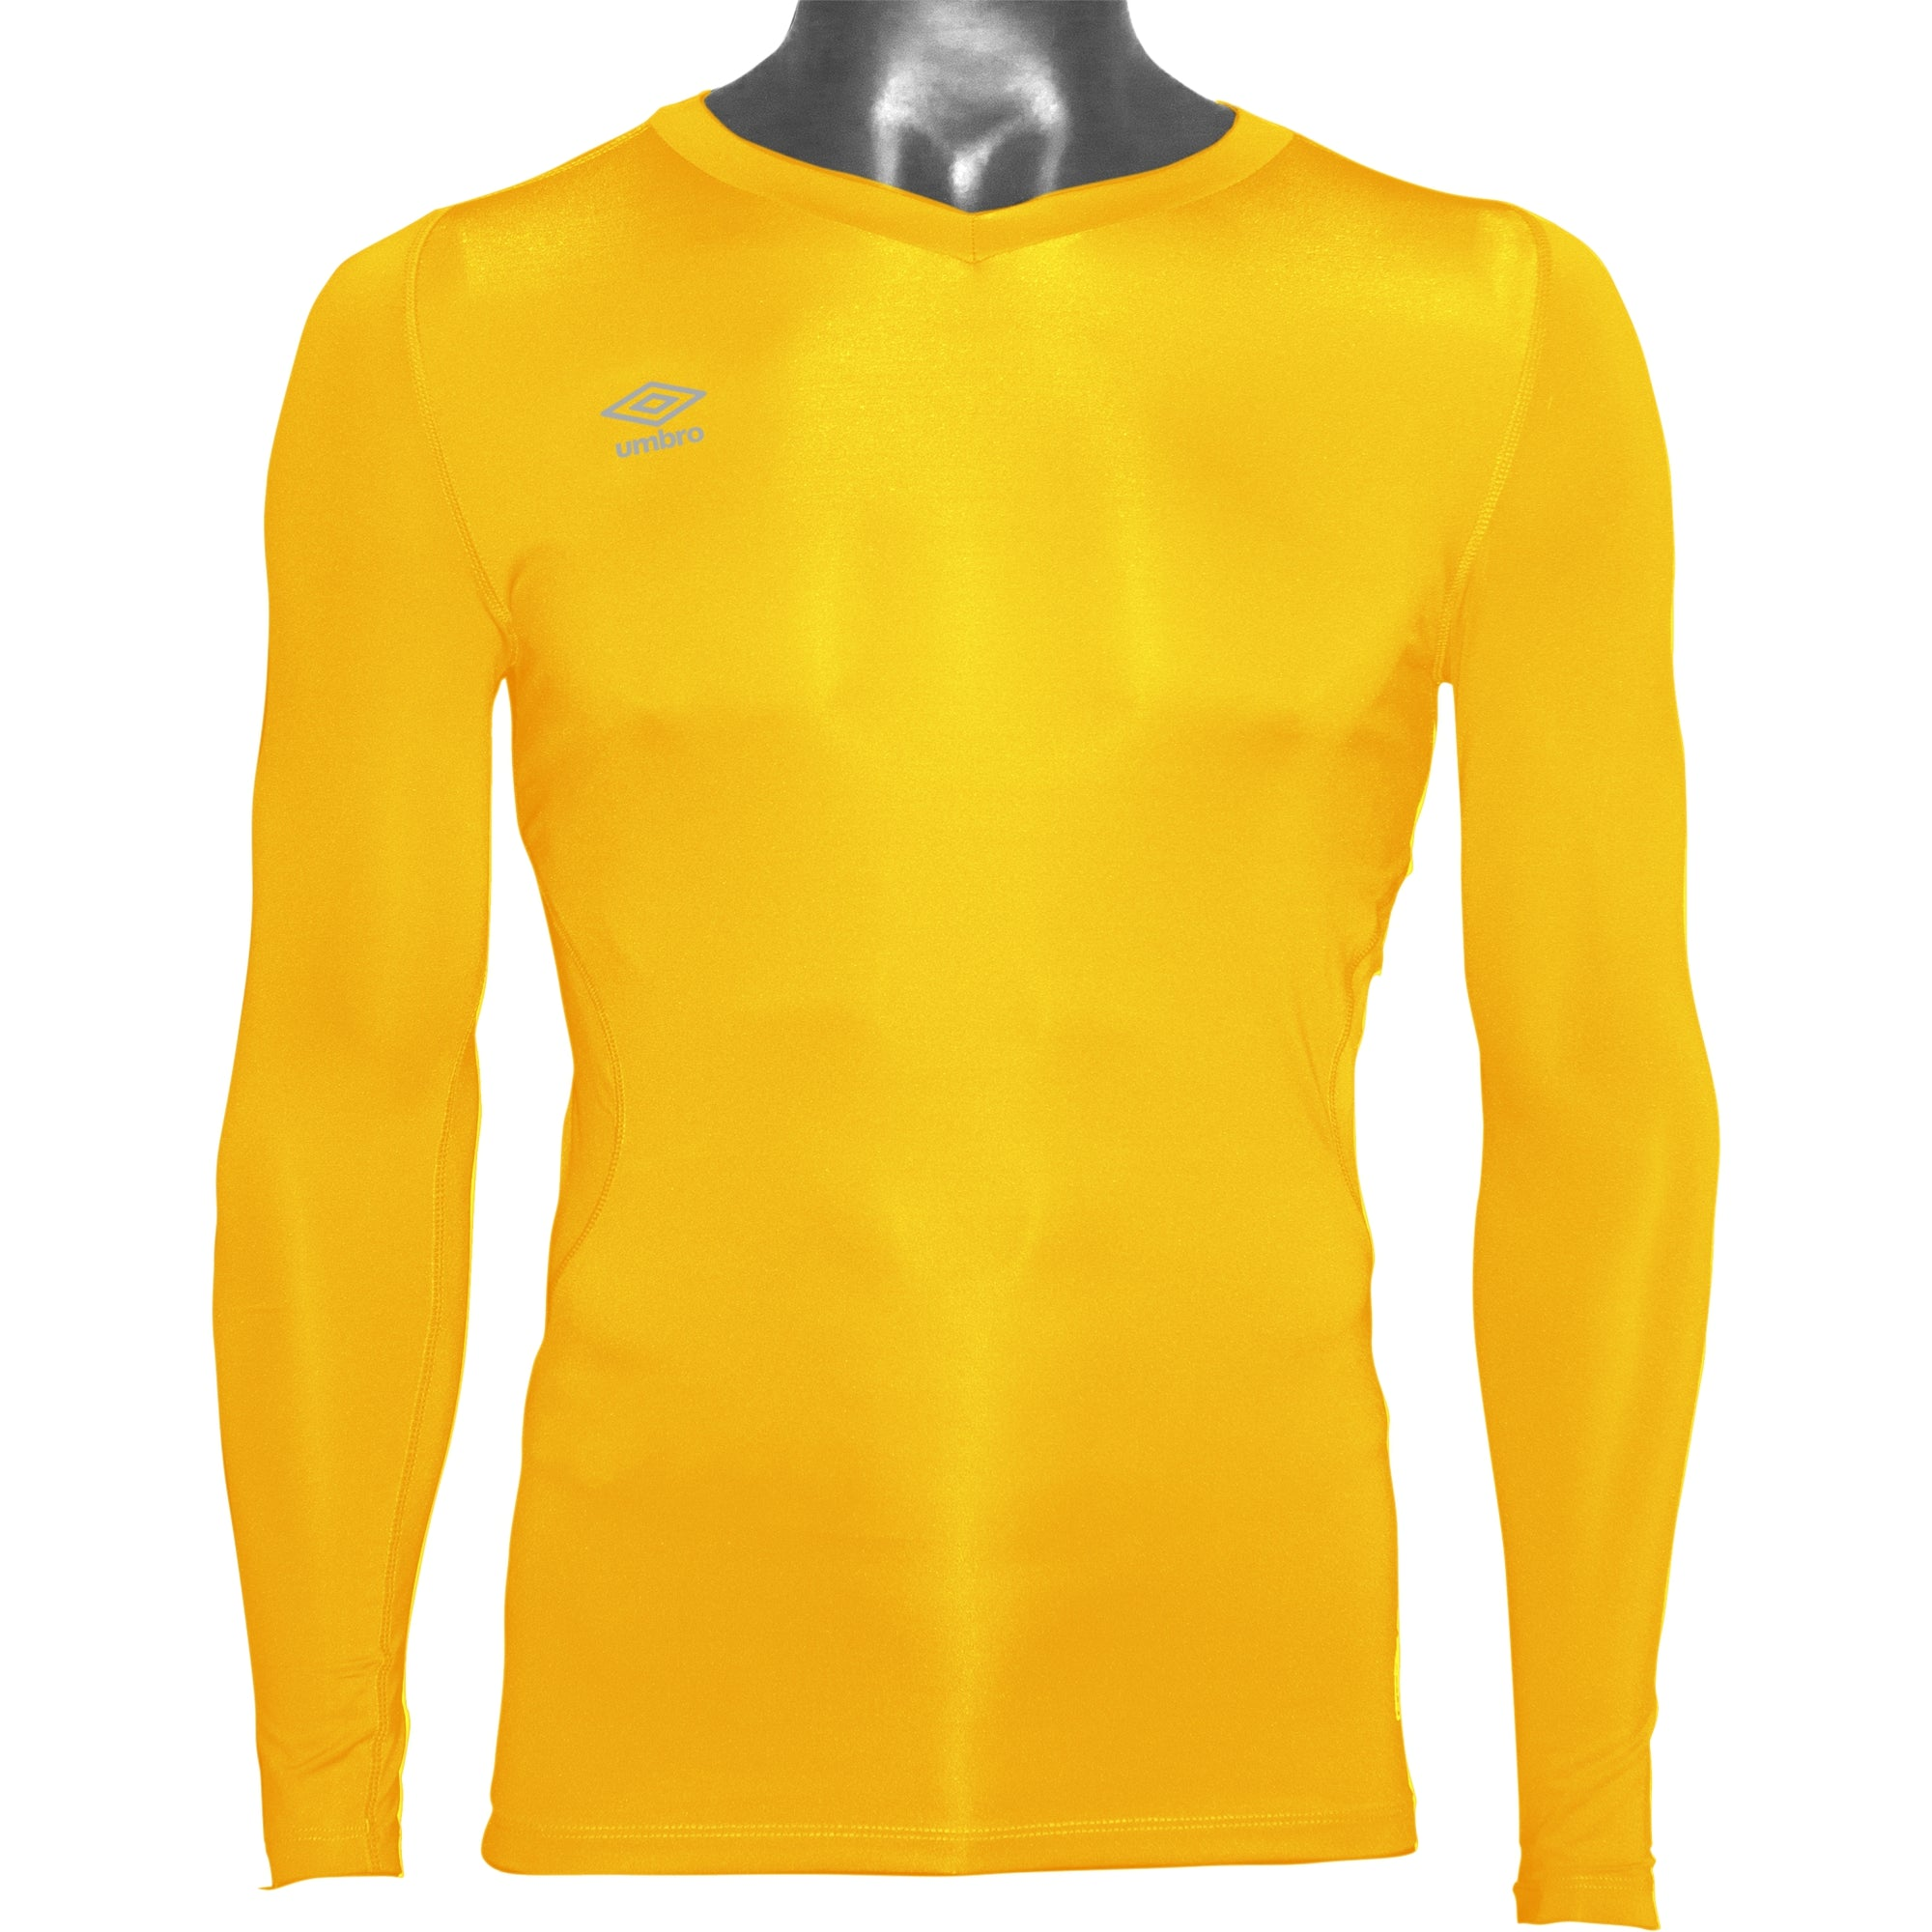 Umbro Elite V Neck baselayer in yellow with reflective stacked diamond logo on right chest